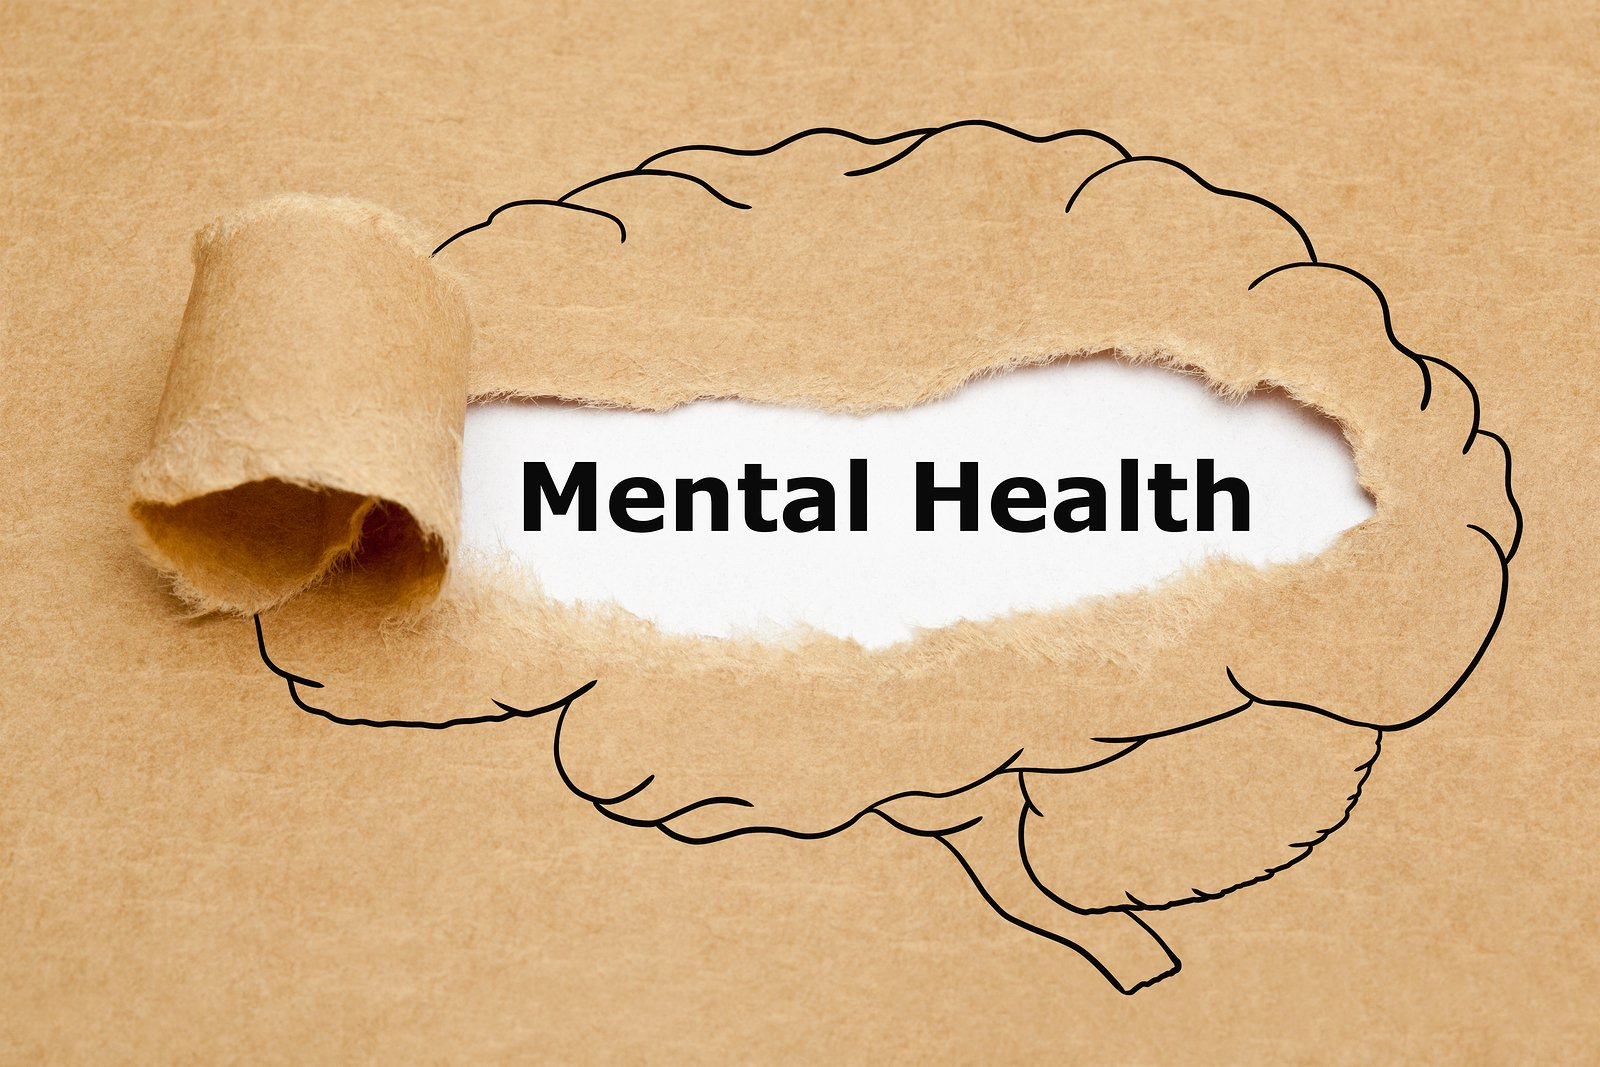 Mental Health Review